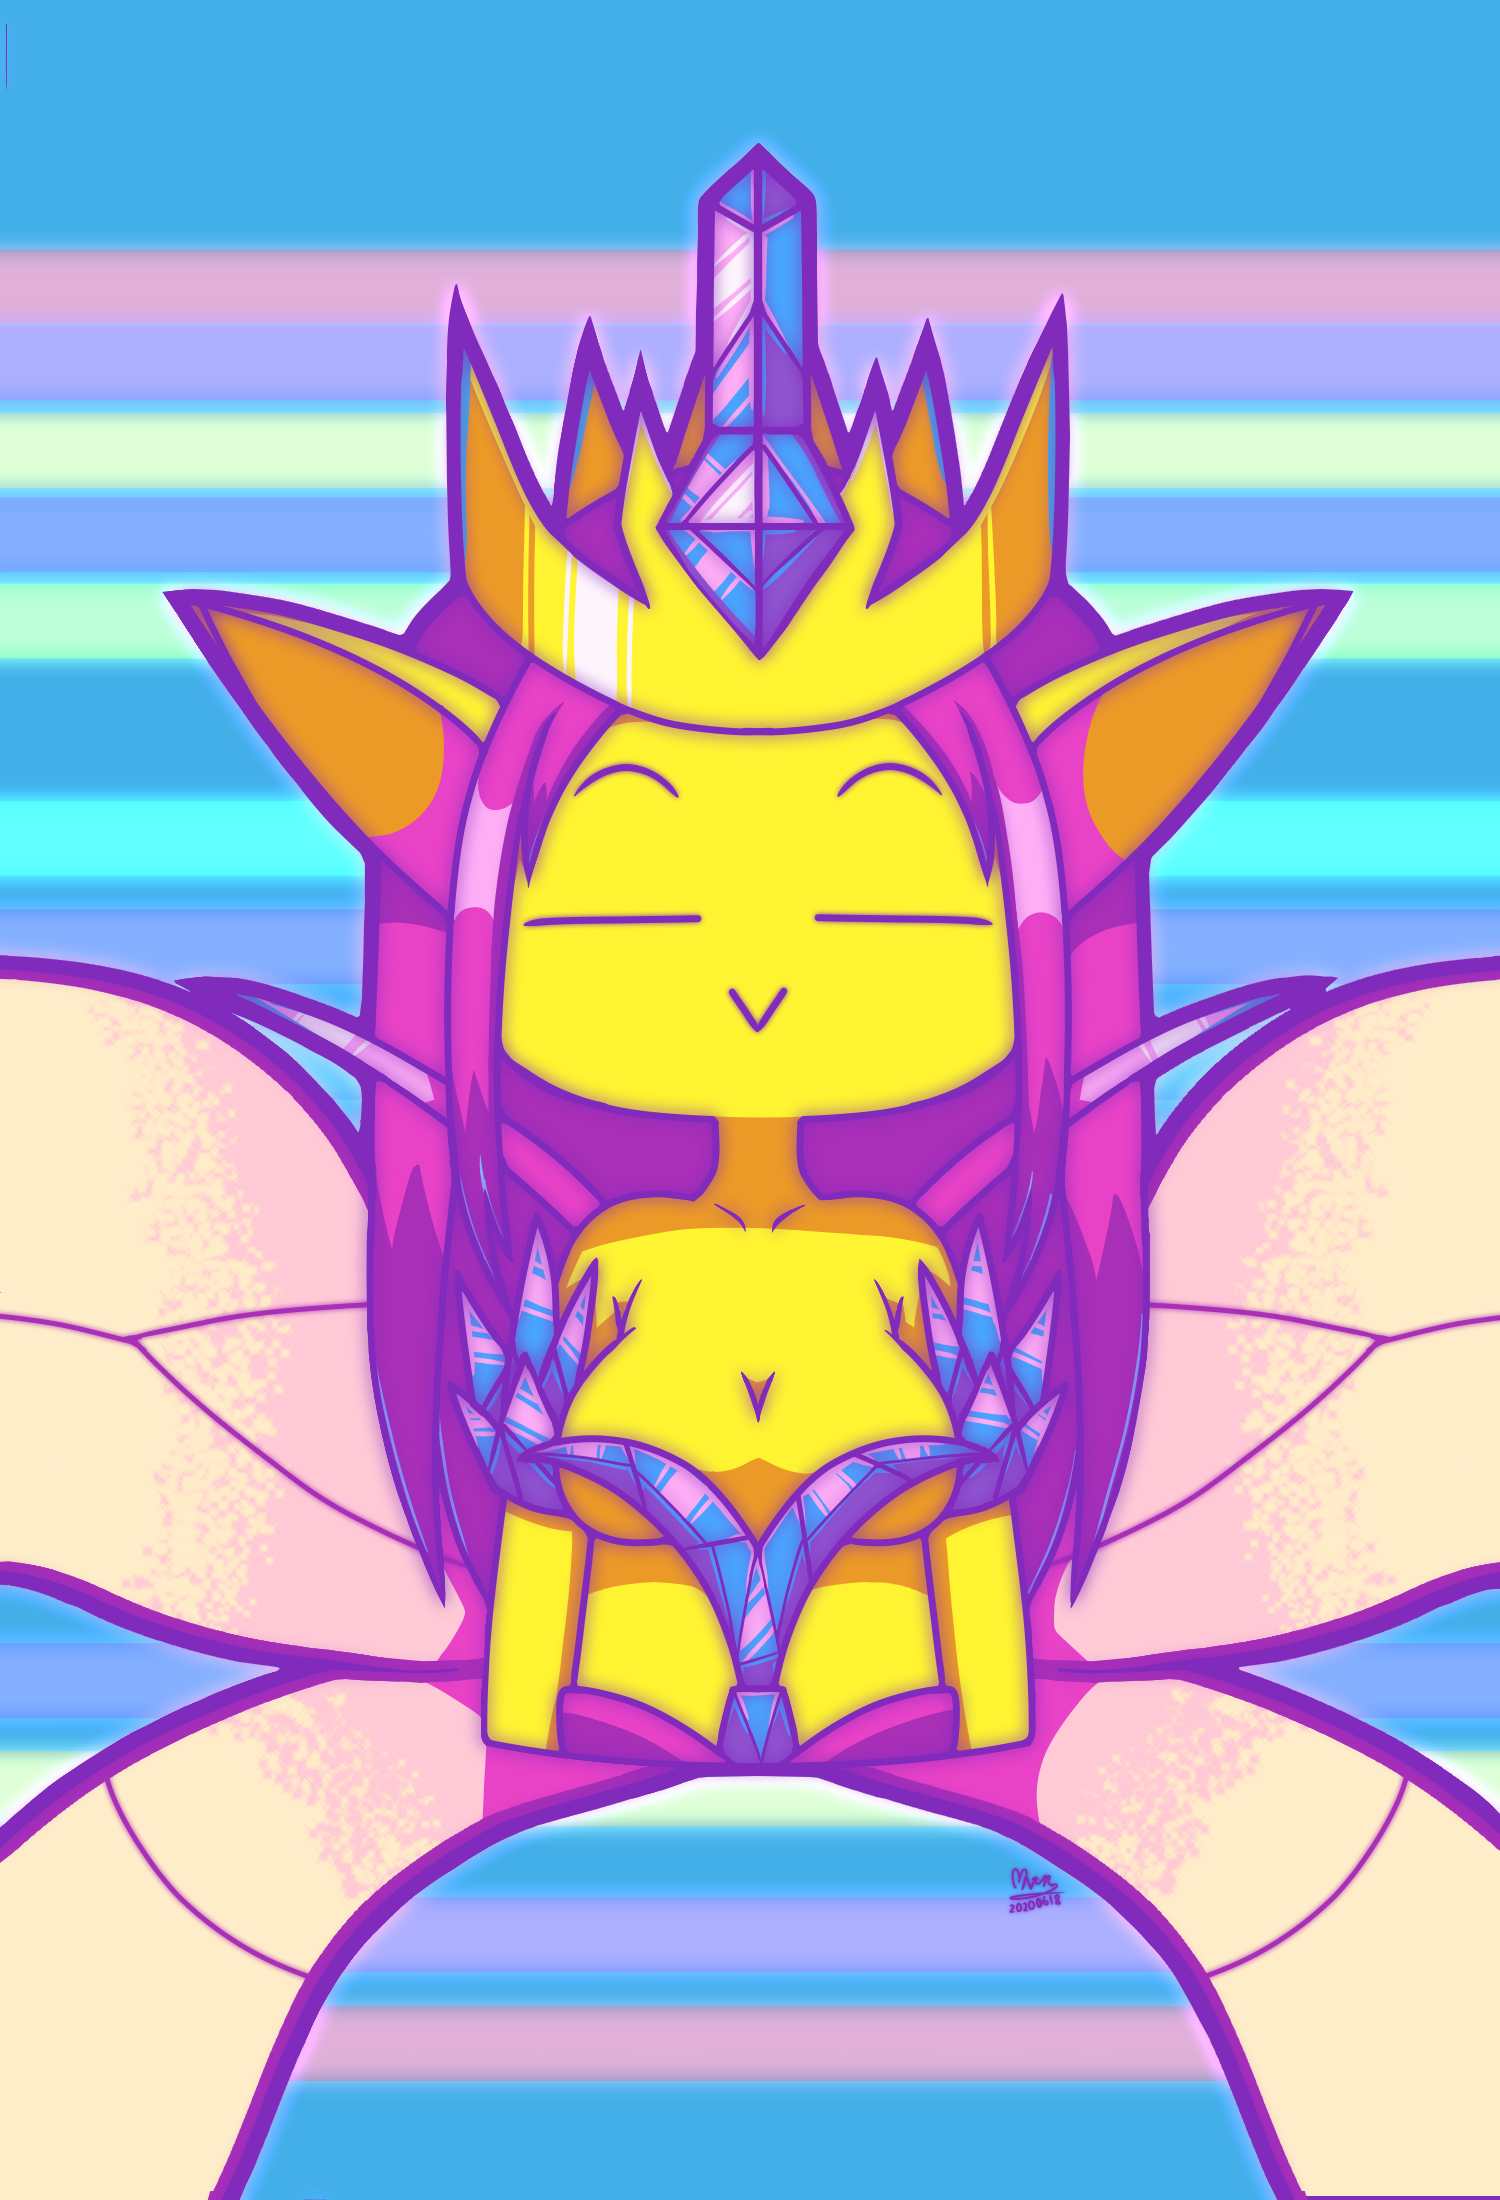 Chibi Terraria Empress of Light - by NeithR - 20200618.png